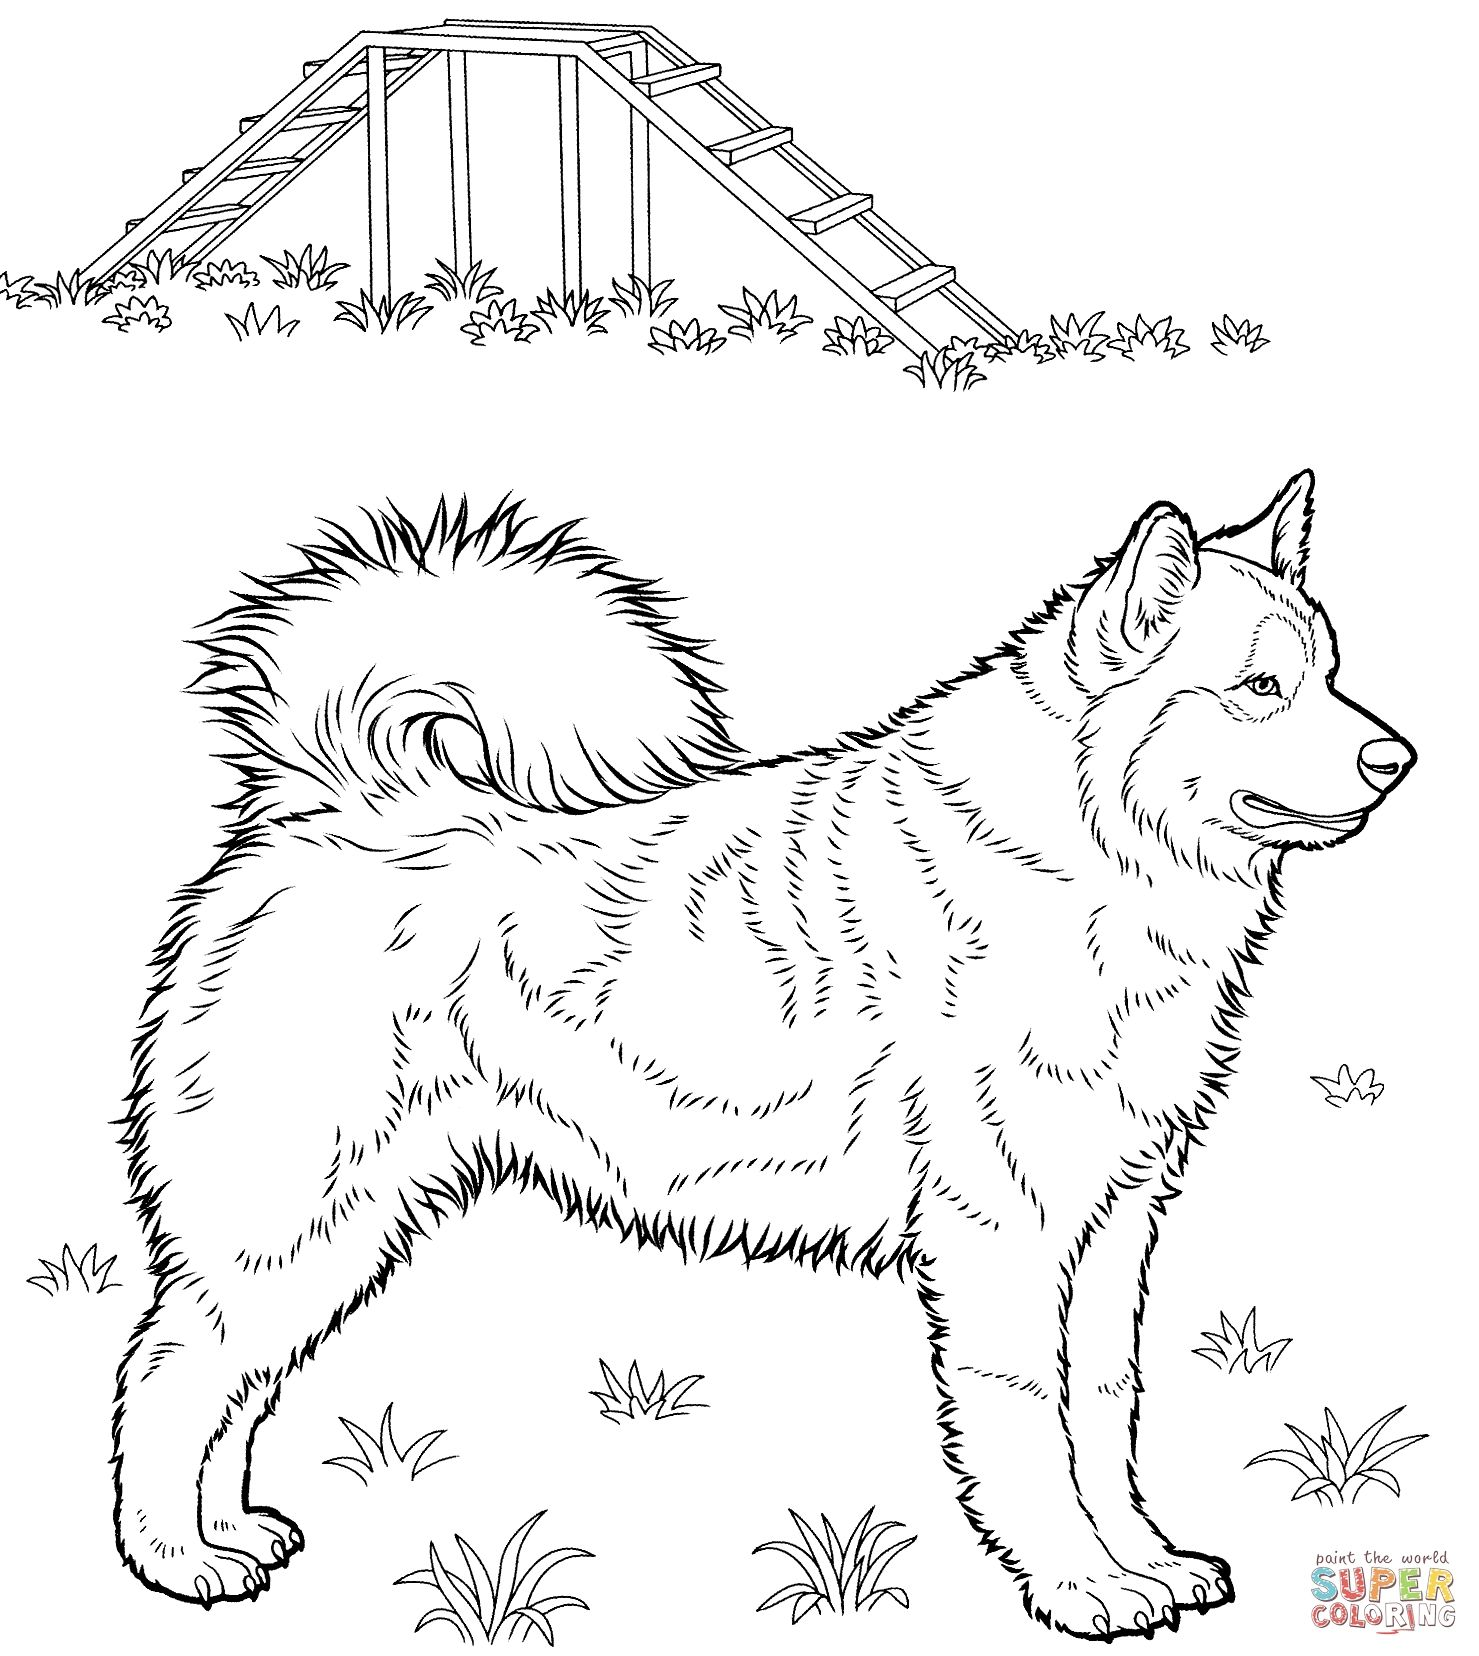 Brilliance Husky Coloring Page Free Printable Coloring Pages | Kids ...